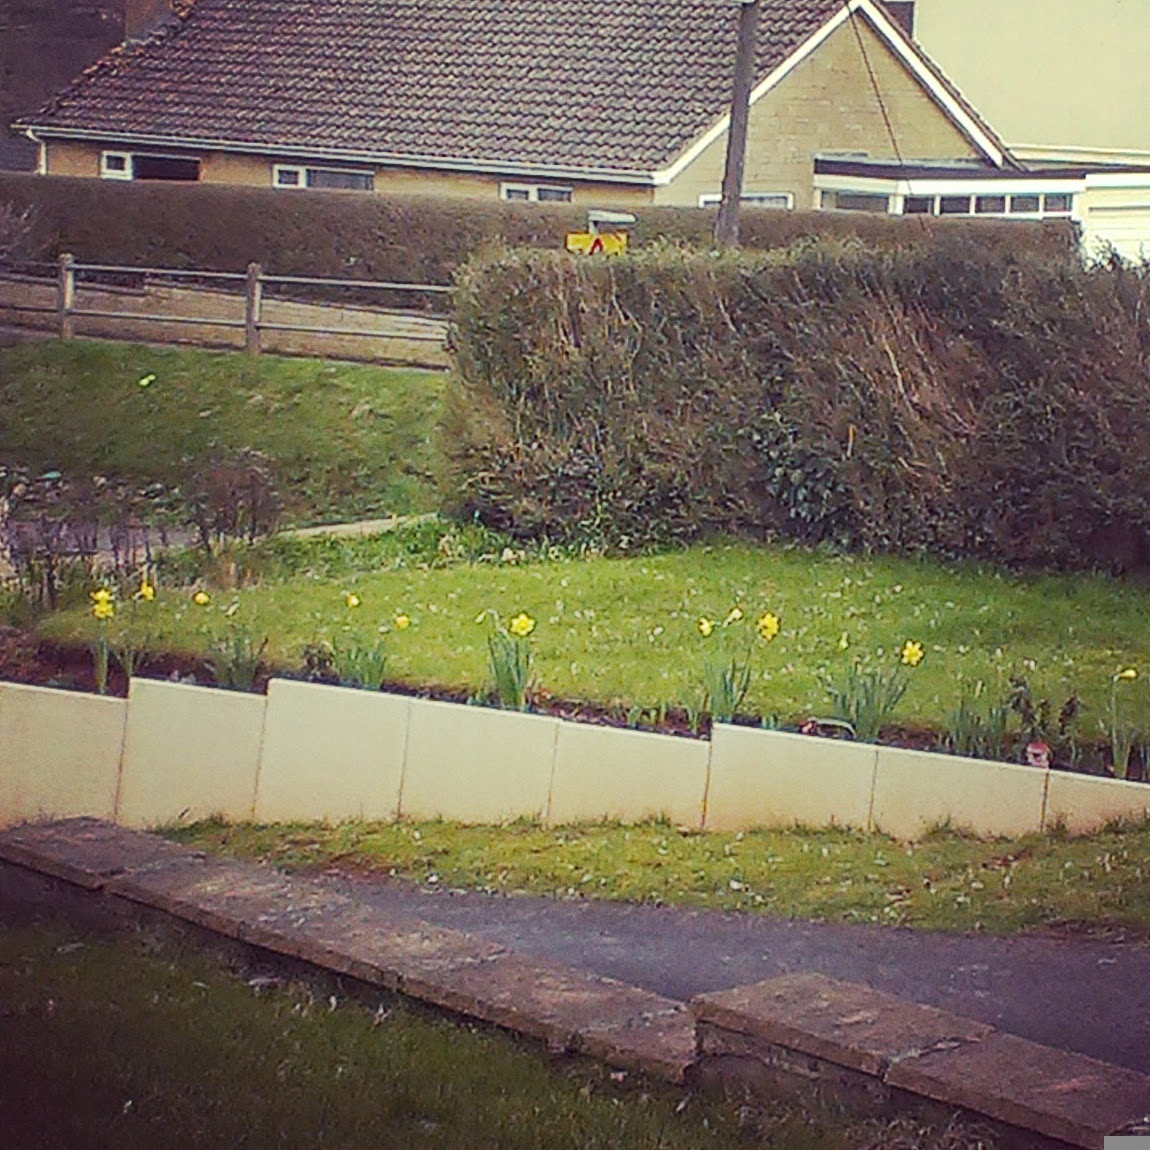 1pm - daffodils in our front garden